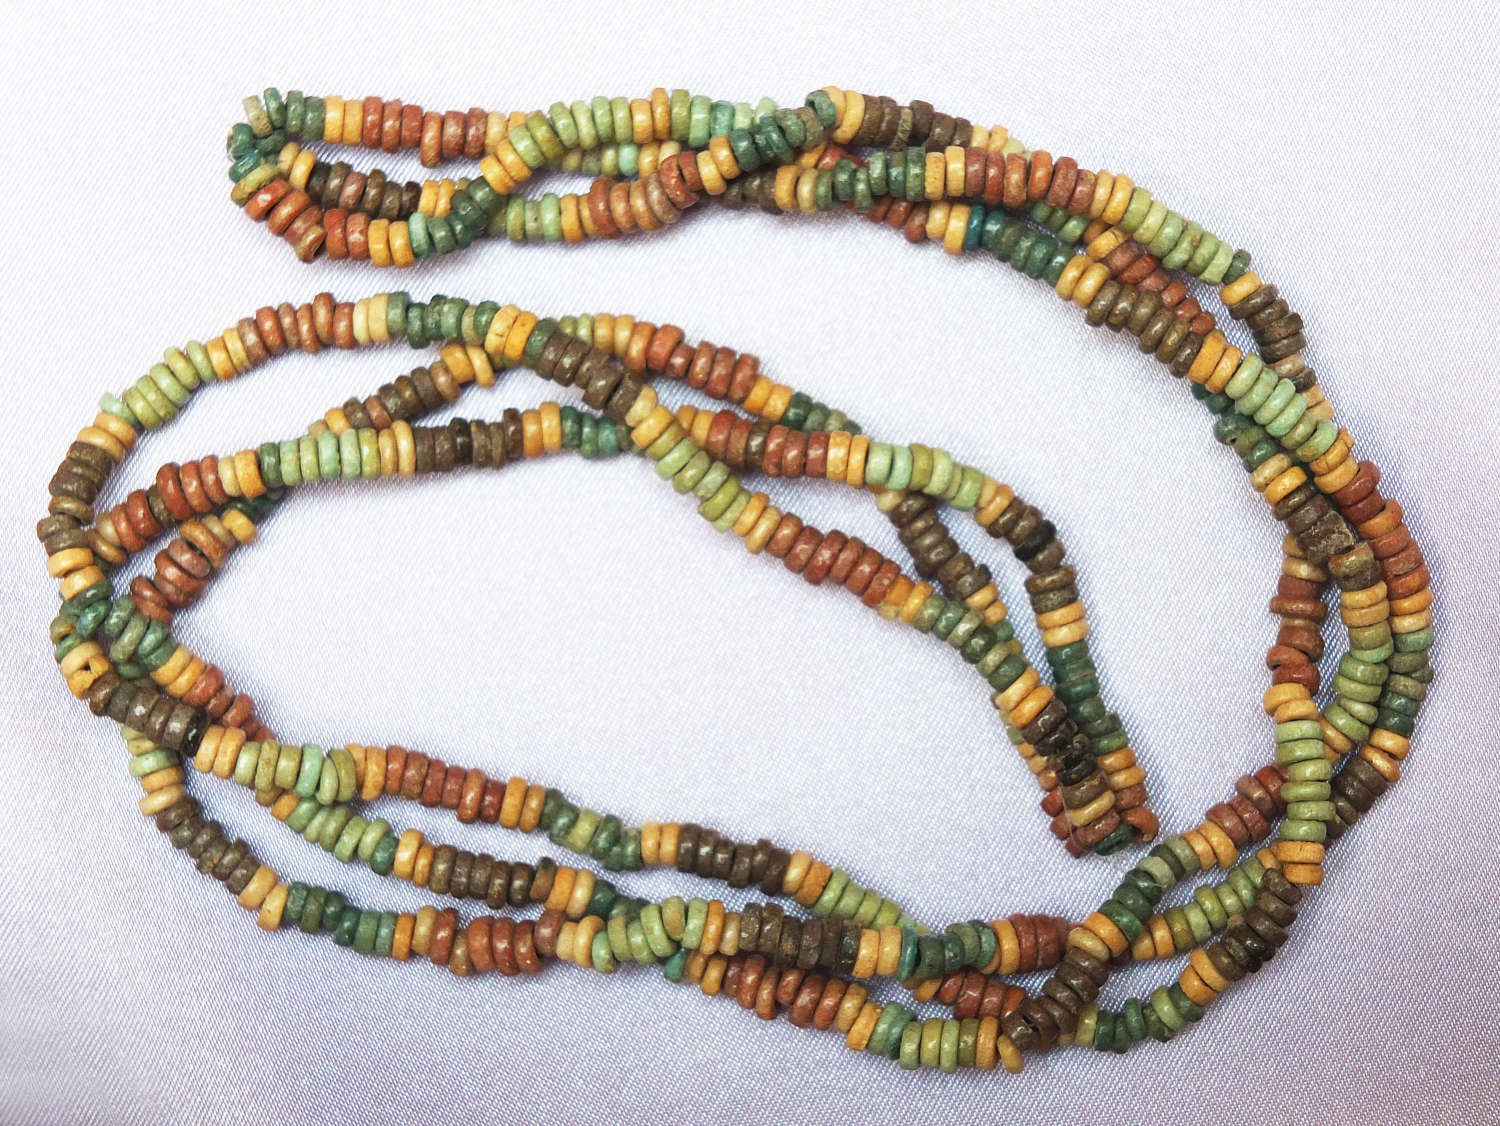 A restrung partially double-stranded necklace of Egyptian beads